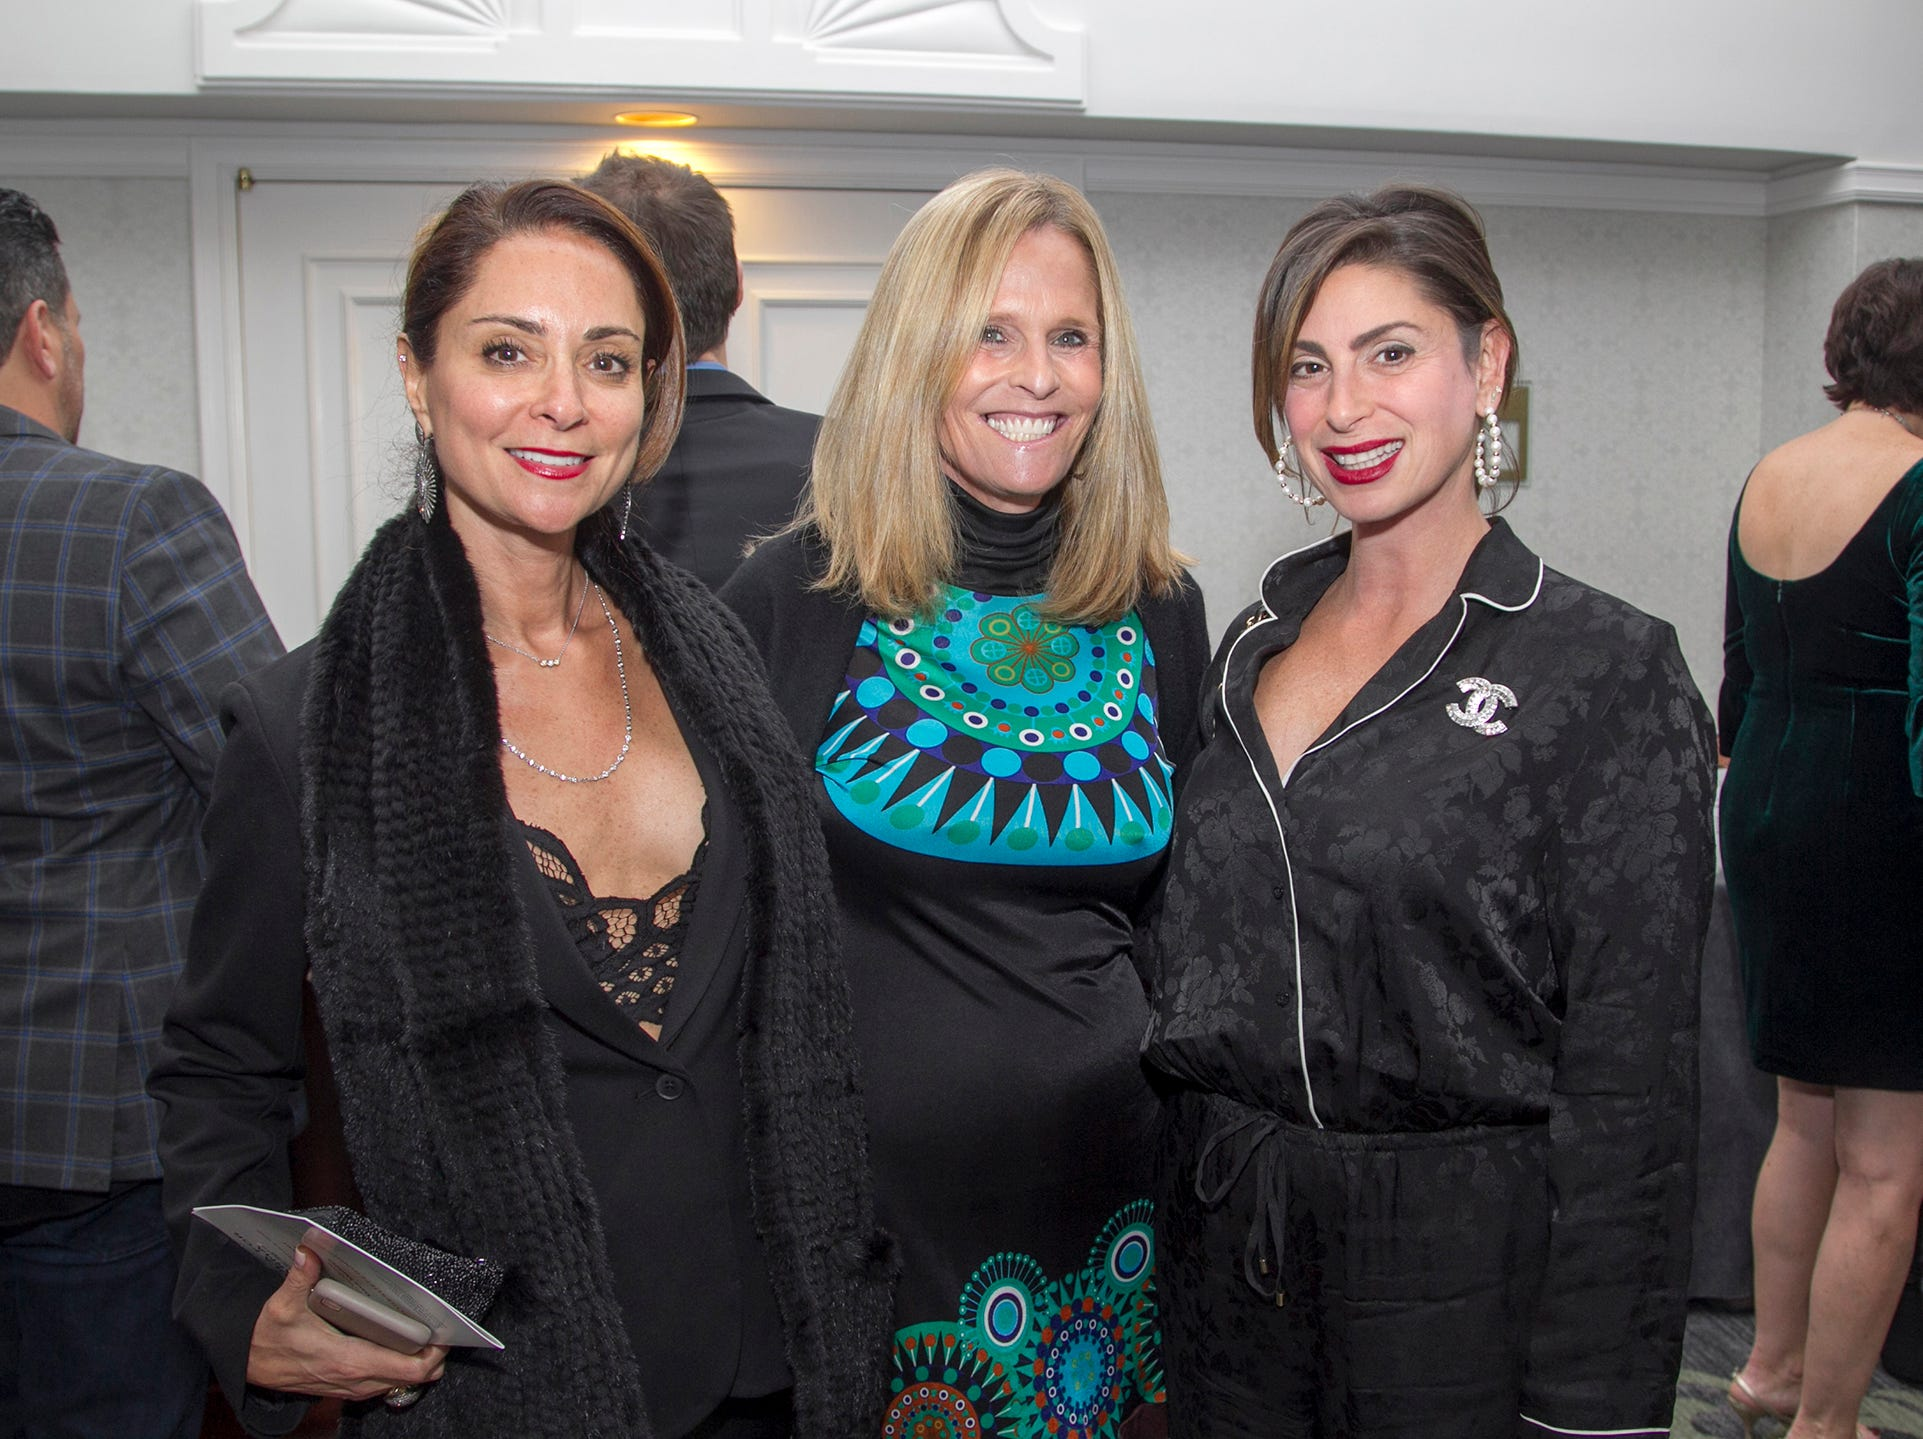 Jenn Graf, Lauren Sheinman, Stefani Greenspan. Kula for Karma's 11th Anniversary gala at Pearl River Hilton. 11/05/2018